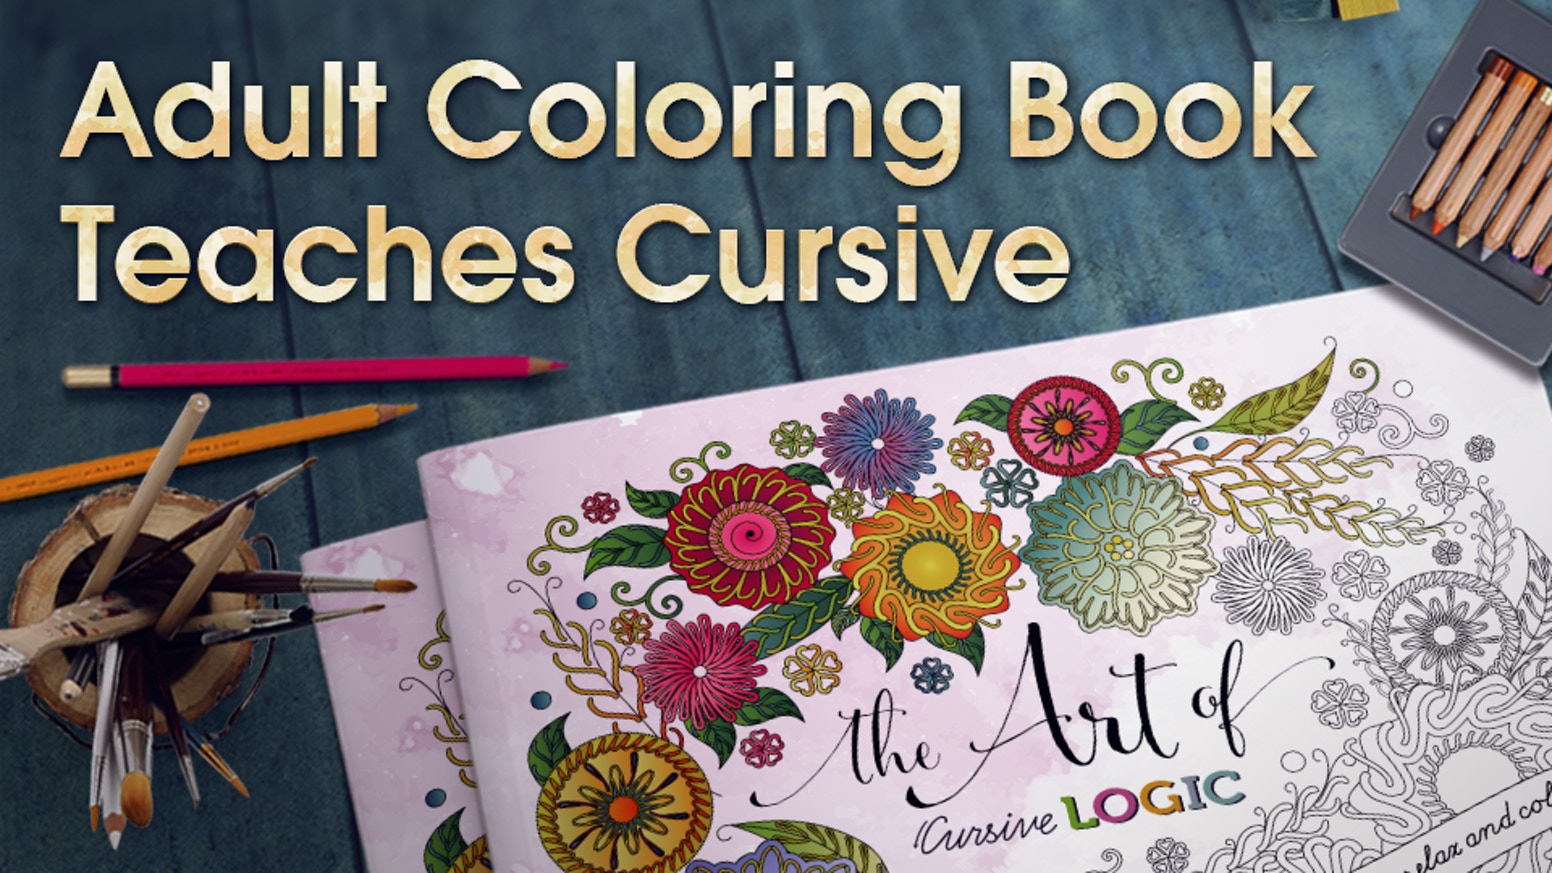 the art of cursivelogic relax color learn cursive by nathan